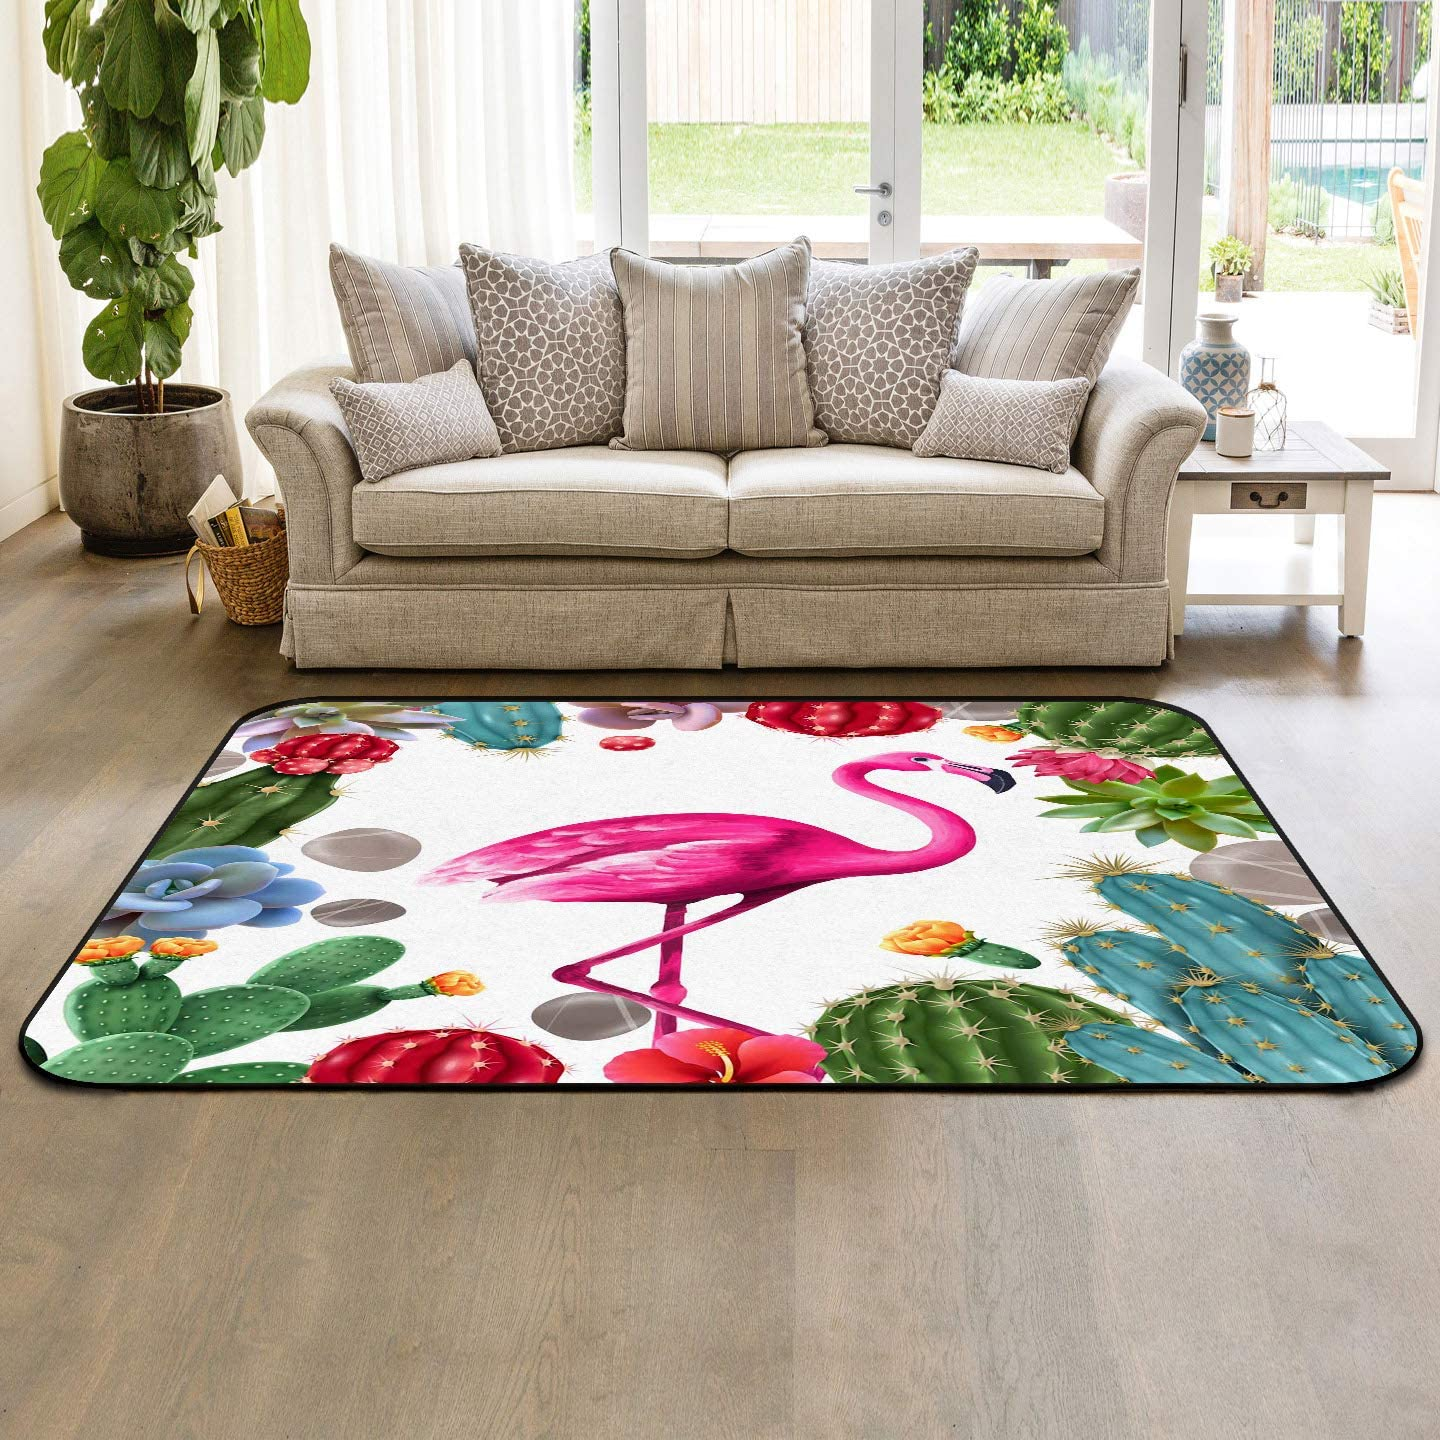 Soft Area Rugs for Bedroom Challenge Max 47% OFF the lowest price Summer Cactus Flamingo Washa Tropical